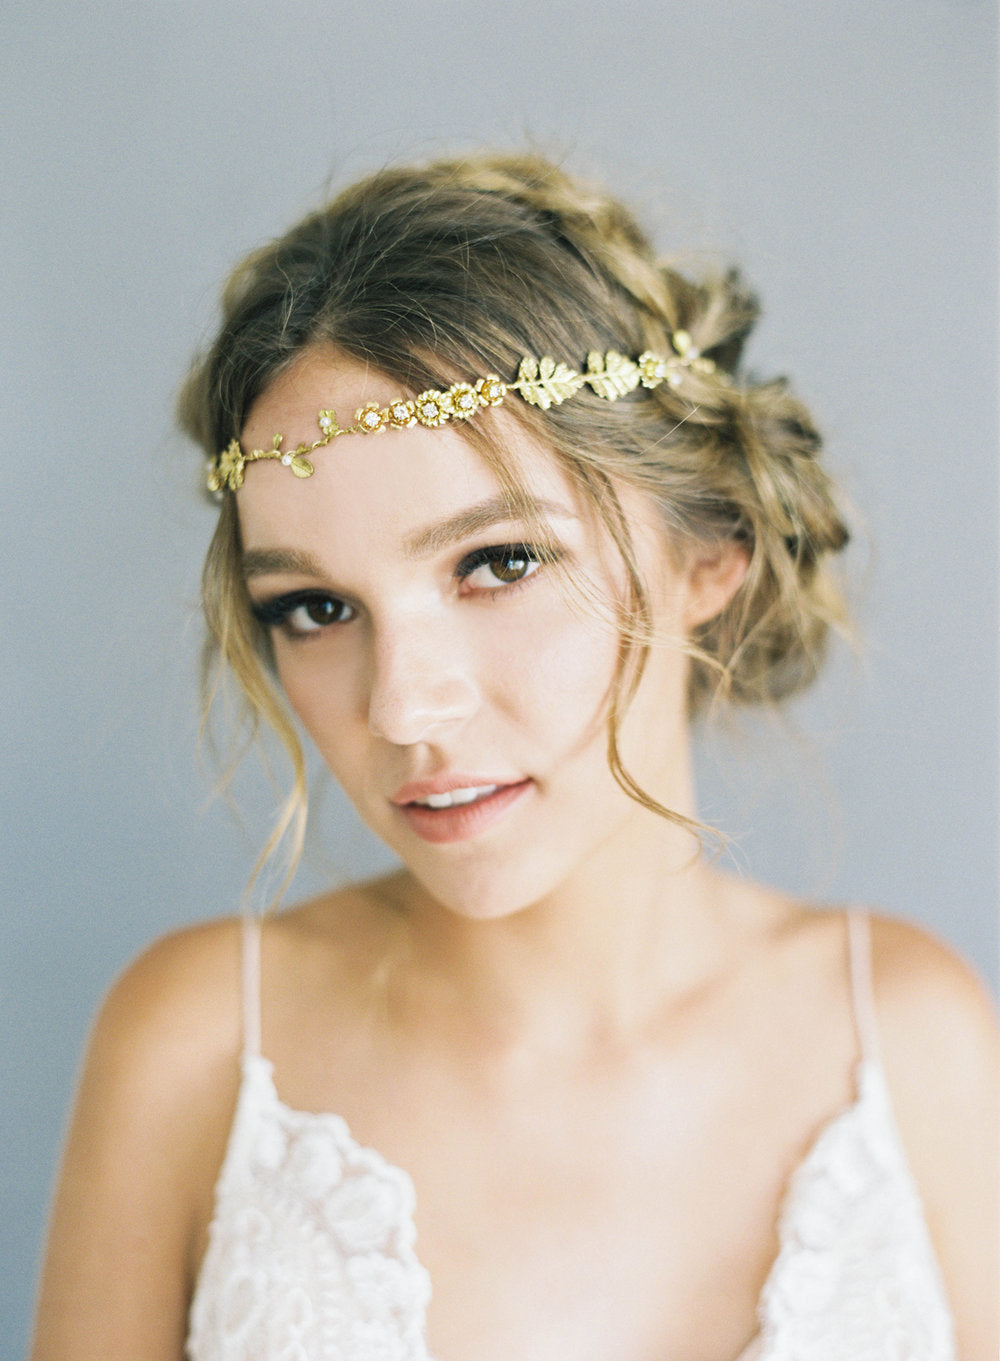 Sydney (gold)-Hair Adornments-Hushed Commotion